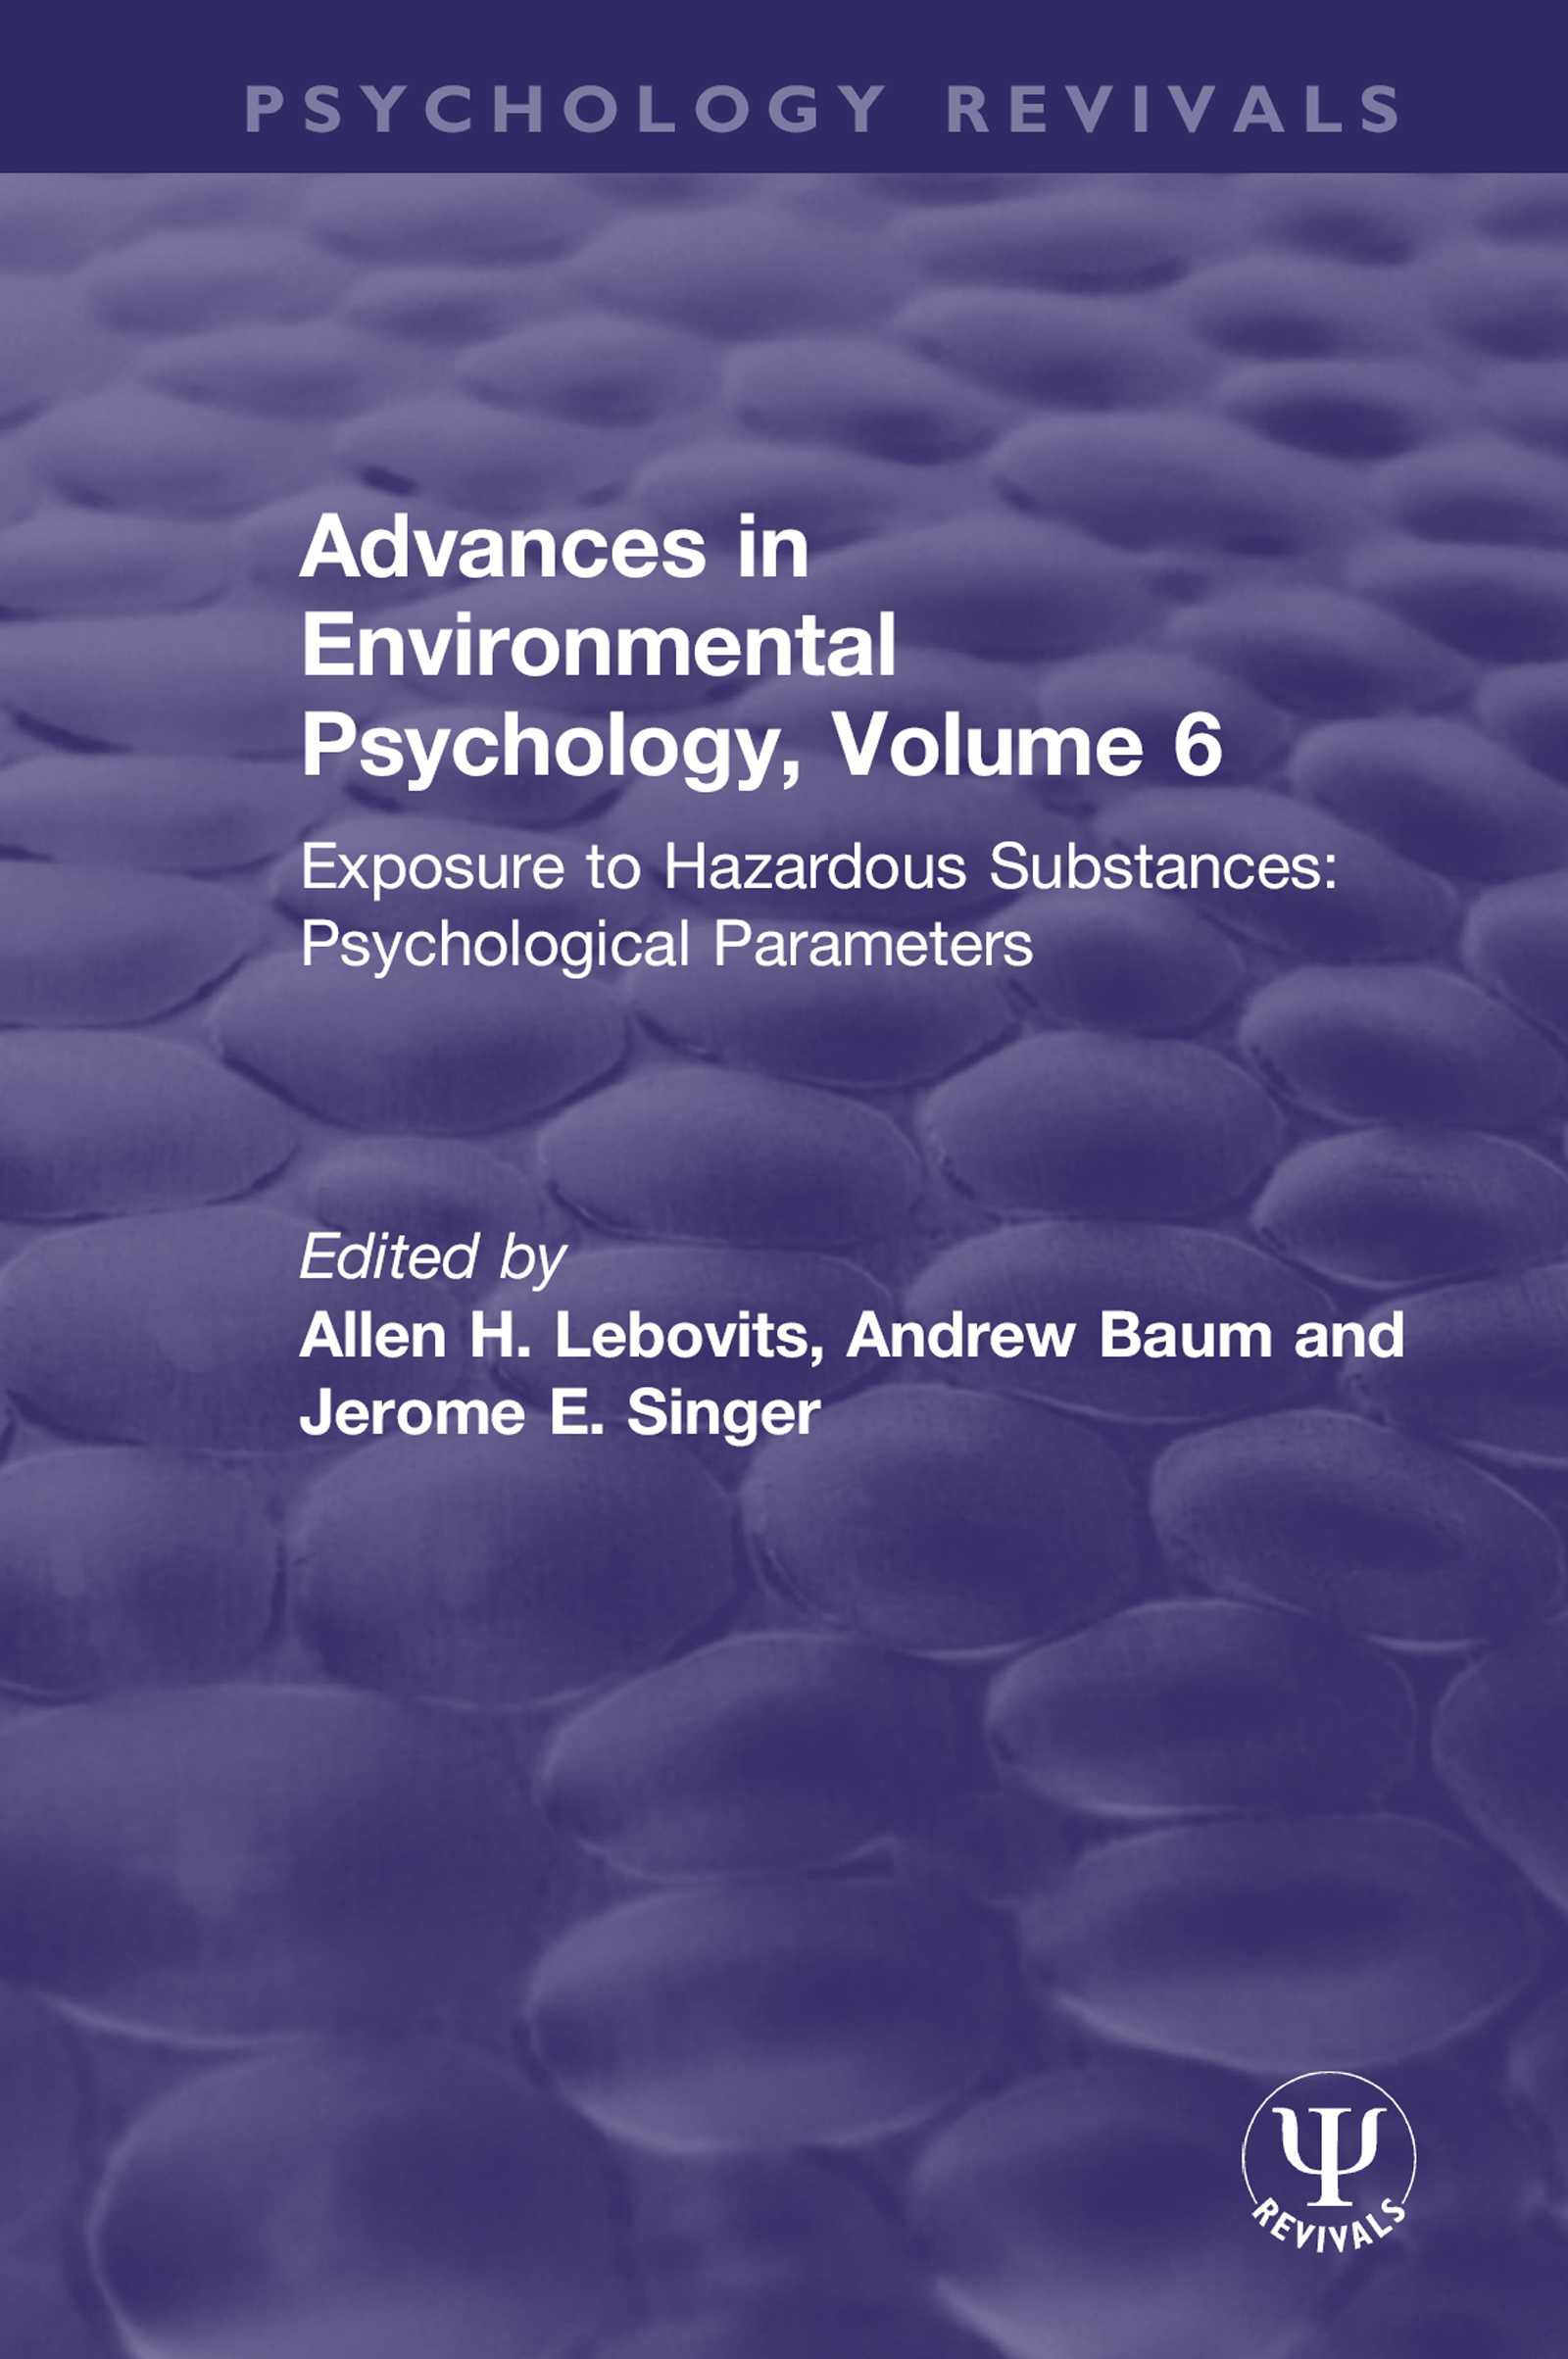 Advances in Environmental Psychology, Volume 6